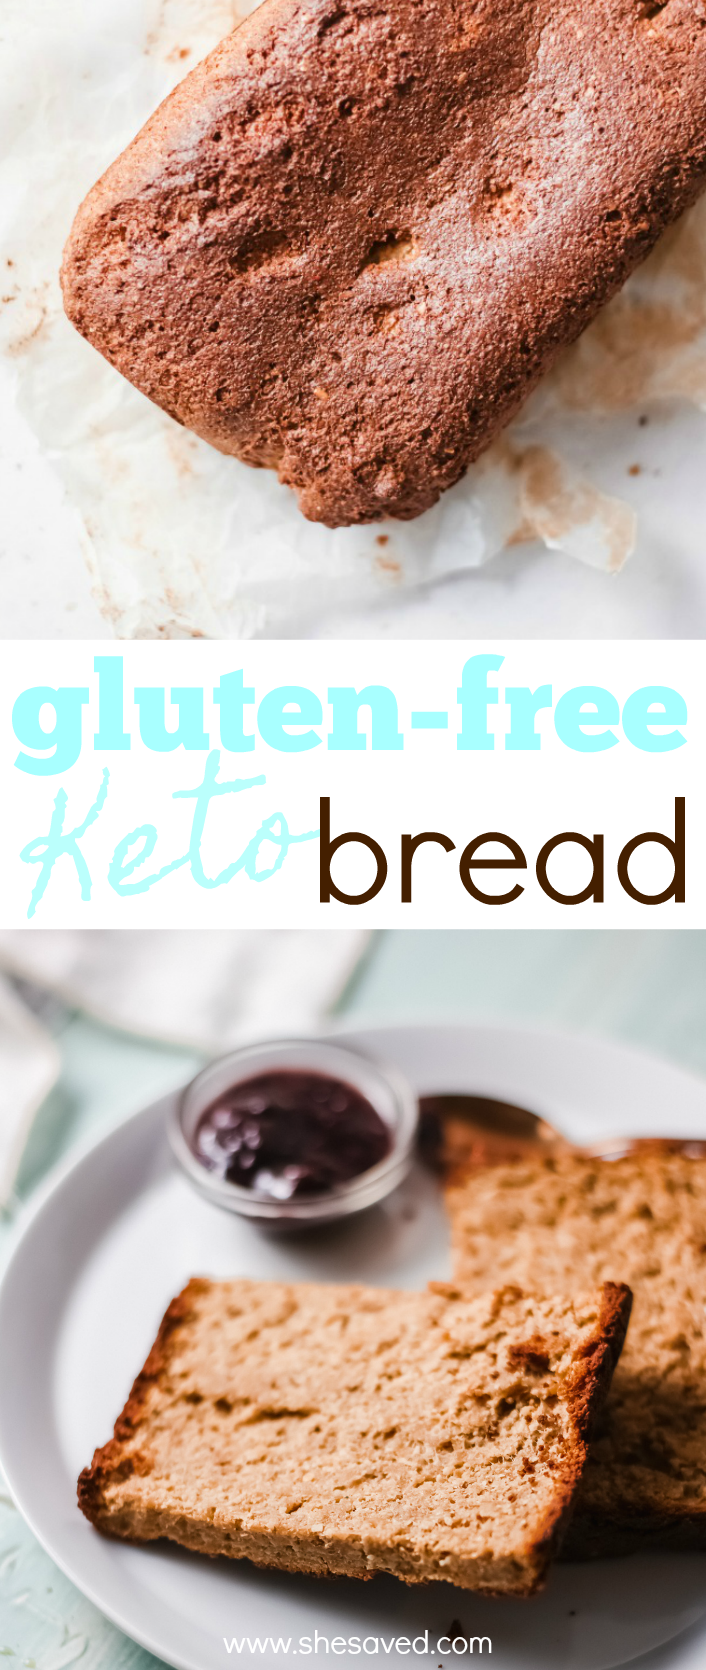 This homeade gluten free keto bread recipe makes a wonderful sandwich loaf and is also great for breakfast toast.